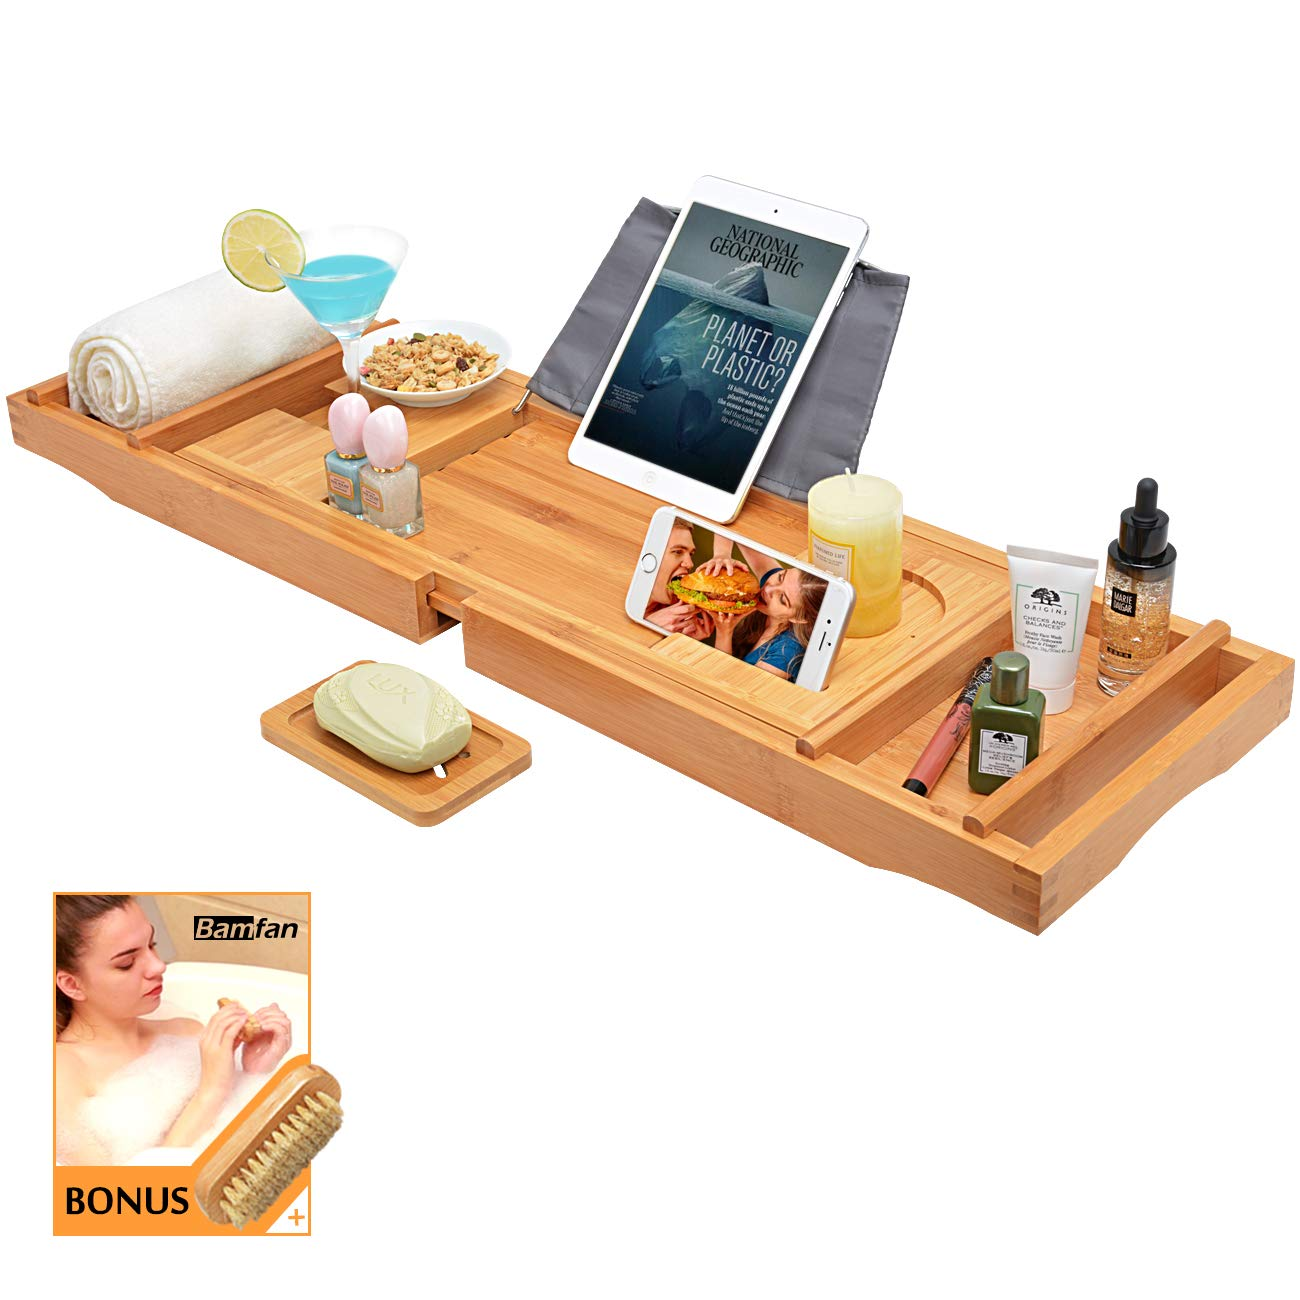 Bath Caddy Tray for Bathtub - Bamboo Adjustable Organizer Tray for Bathroom with Free Soap Dish Suitable for Luxury Spa or Reading